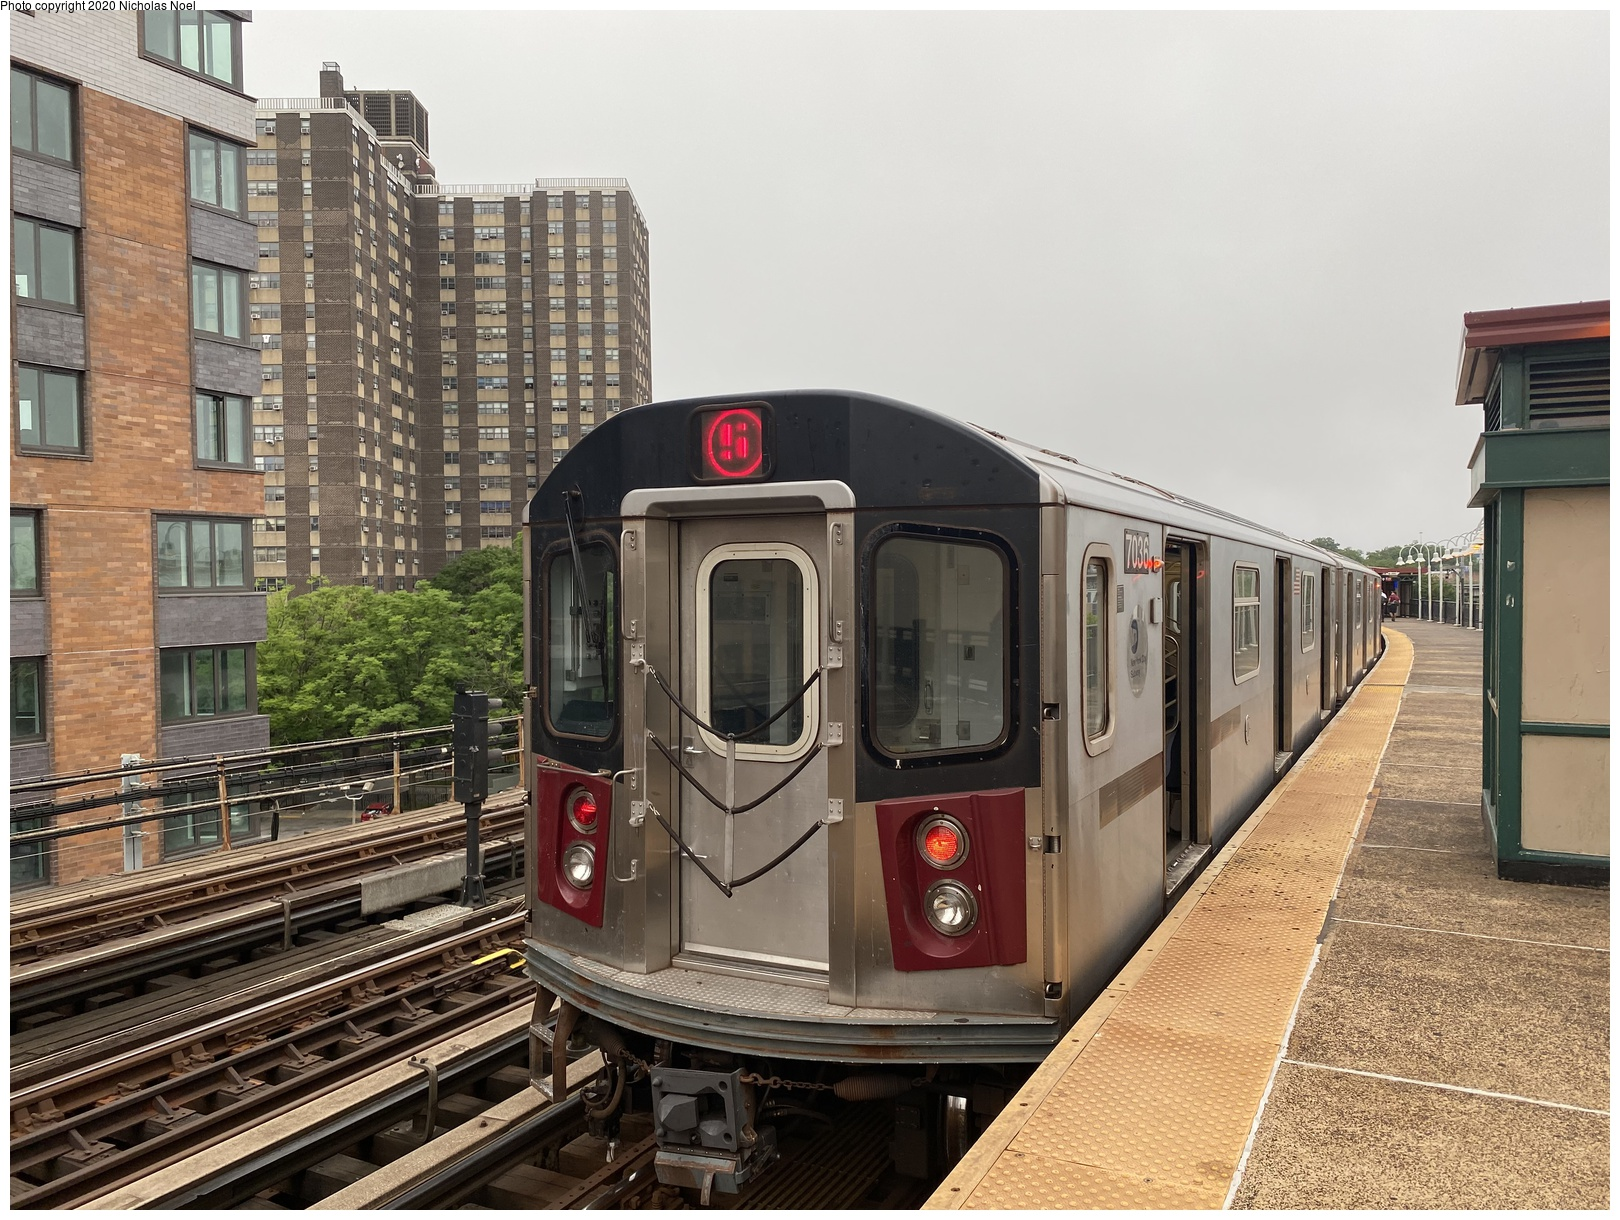 (230k, 1044x727)<br><b>Country:</b> United States<br><b>City:</b> New York<br><b>System:</b> New York City Transit<br><b>Location:</b> 239th Street Yard<br><b>Car:</b> Low-V 4144 <br><b>Photo by:</b> Joel Shanus<br><b>Viewed (this week/total):</b> 0 / 1129